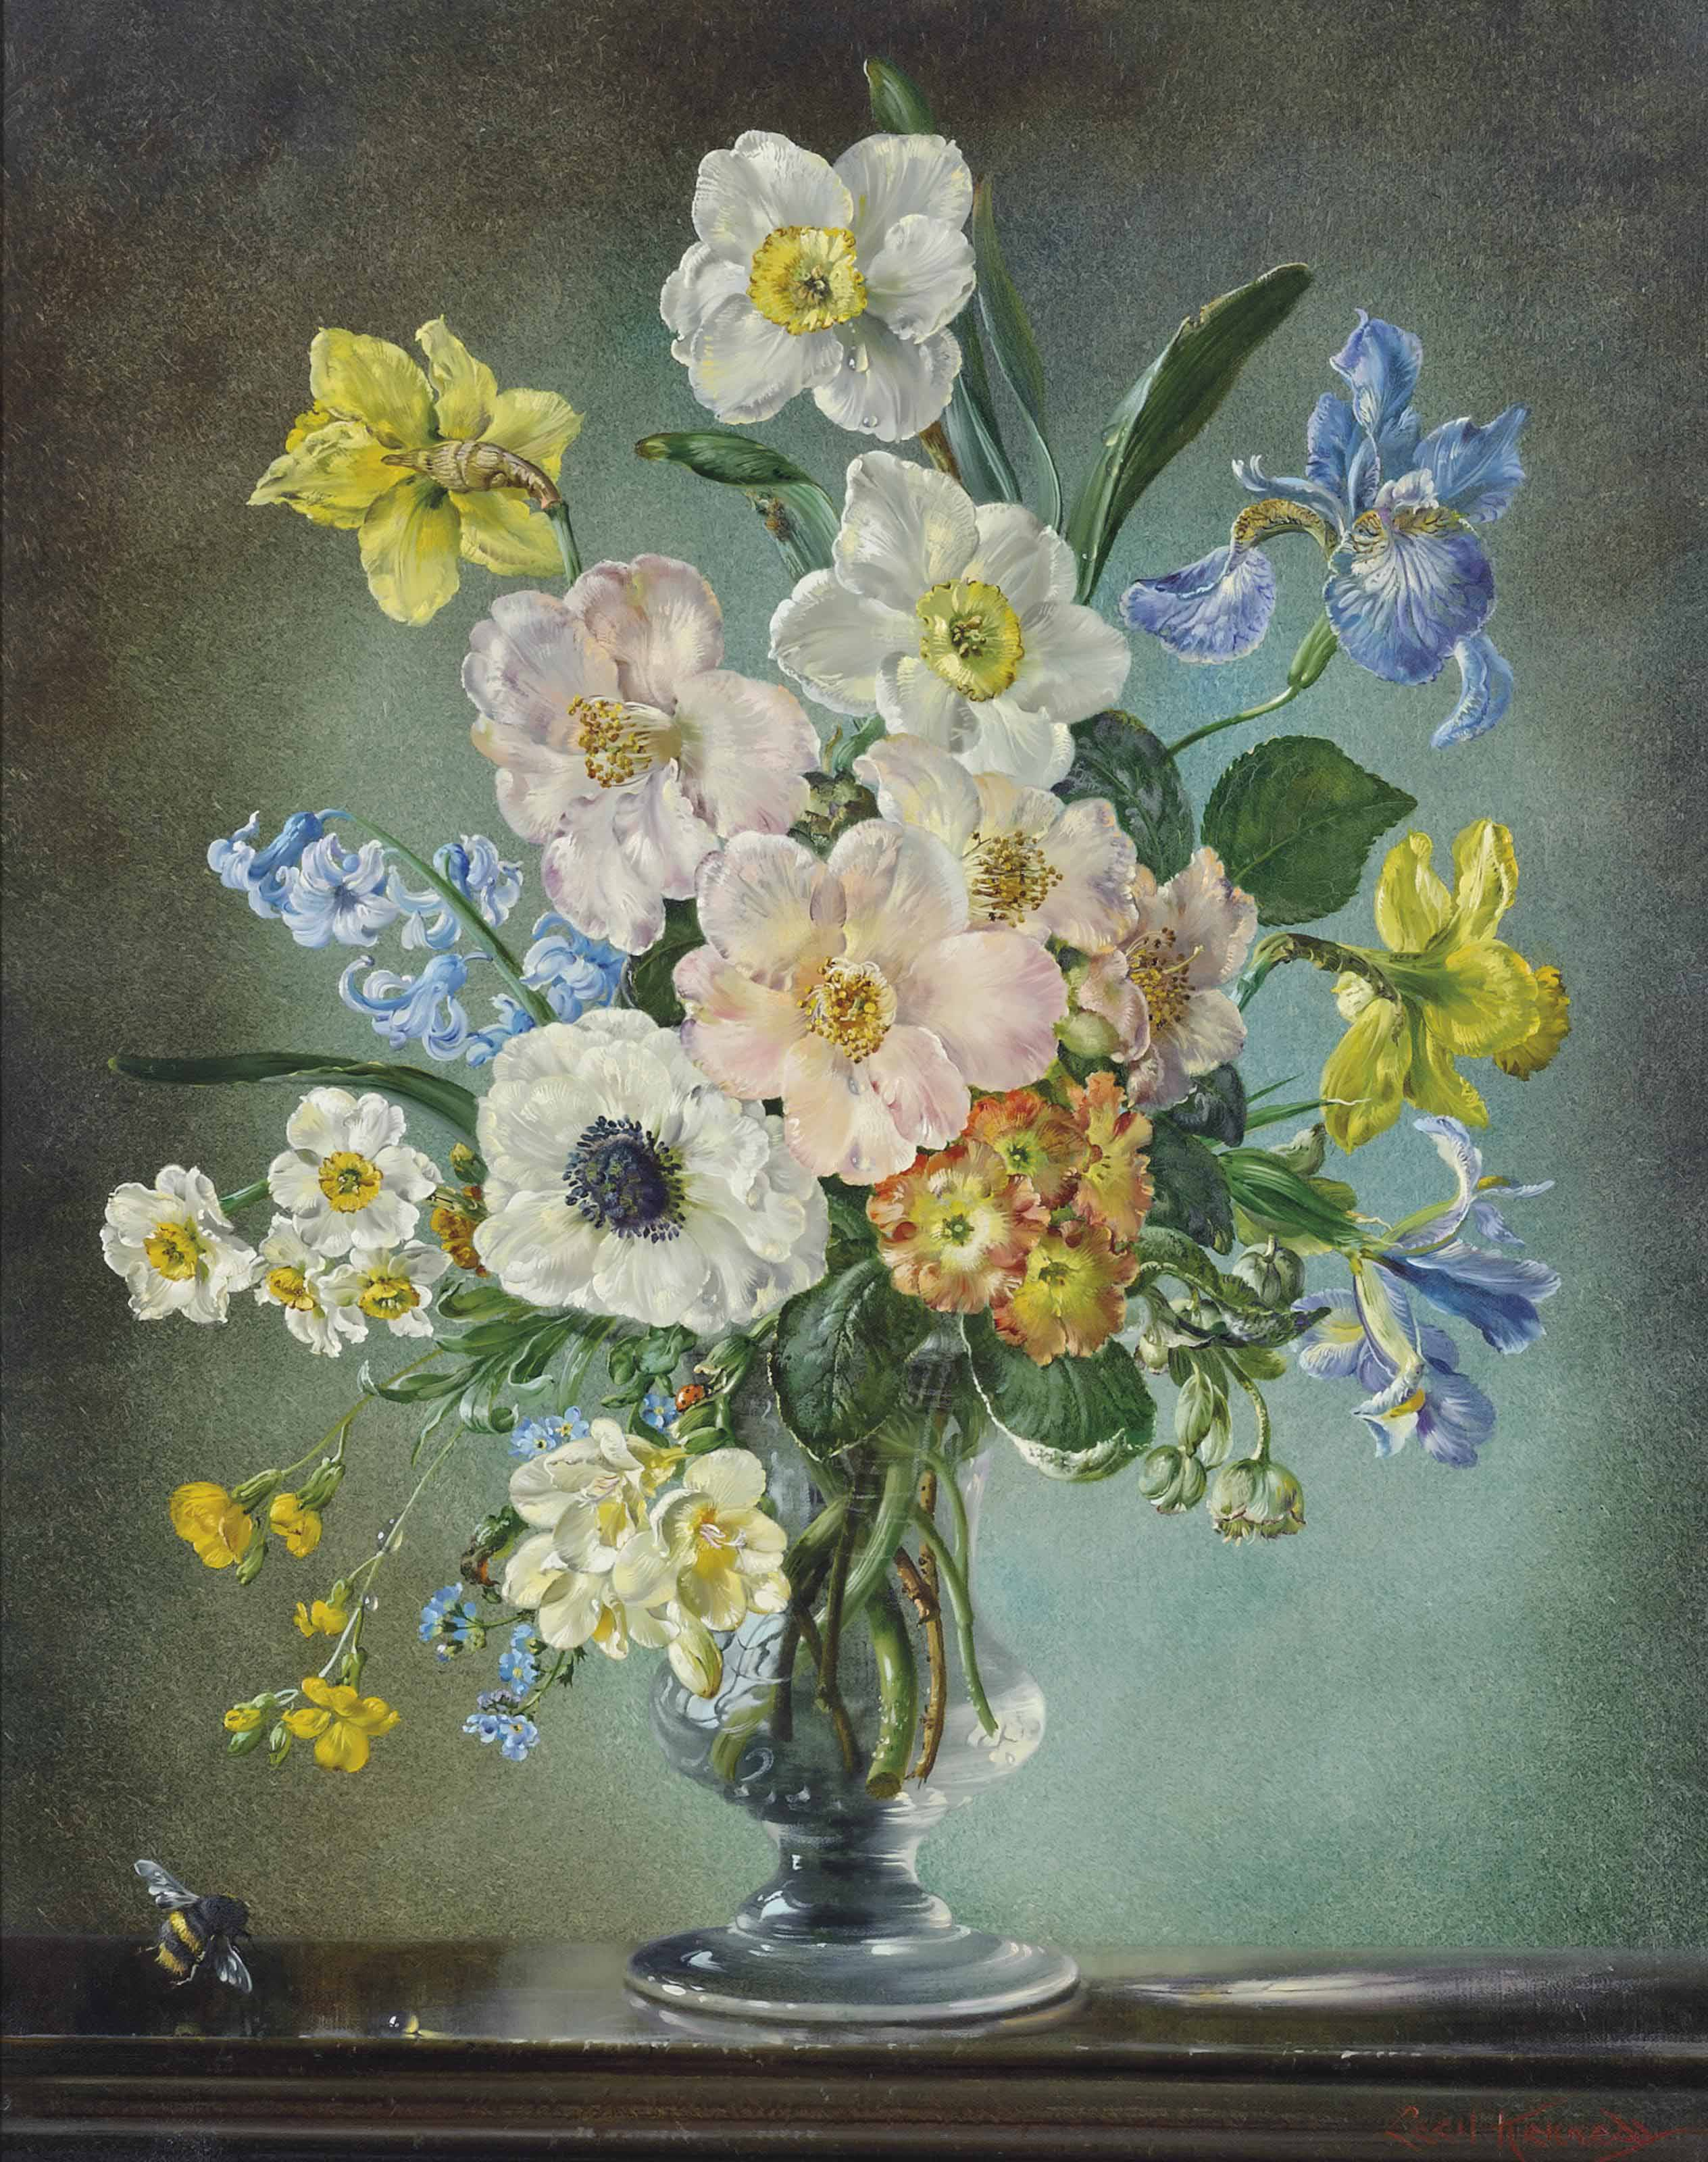 Spring: daffodils, camellias, Spanish bluebells, anemones, Siberian iris, Dutch bulbous iris, polyanthus primulas, hellebores, freesias, forget-me-nots, broom and cowslips, in a glass vase, with a bee